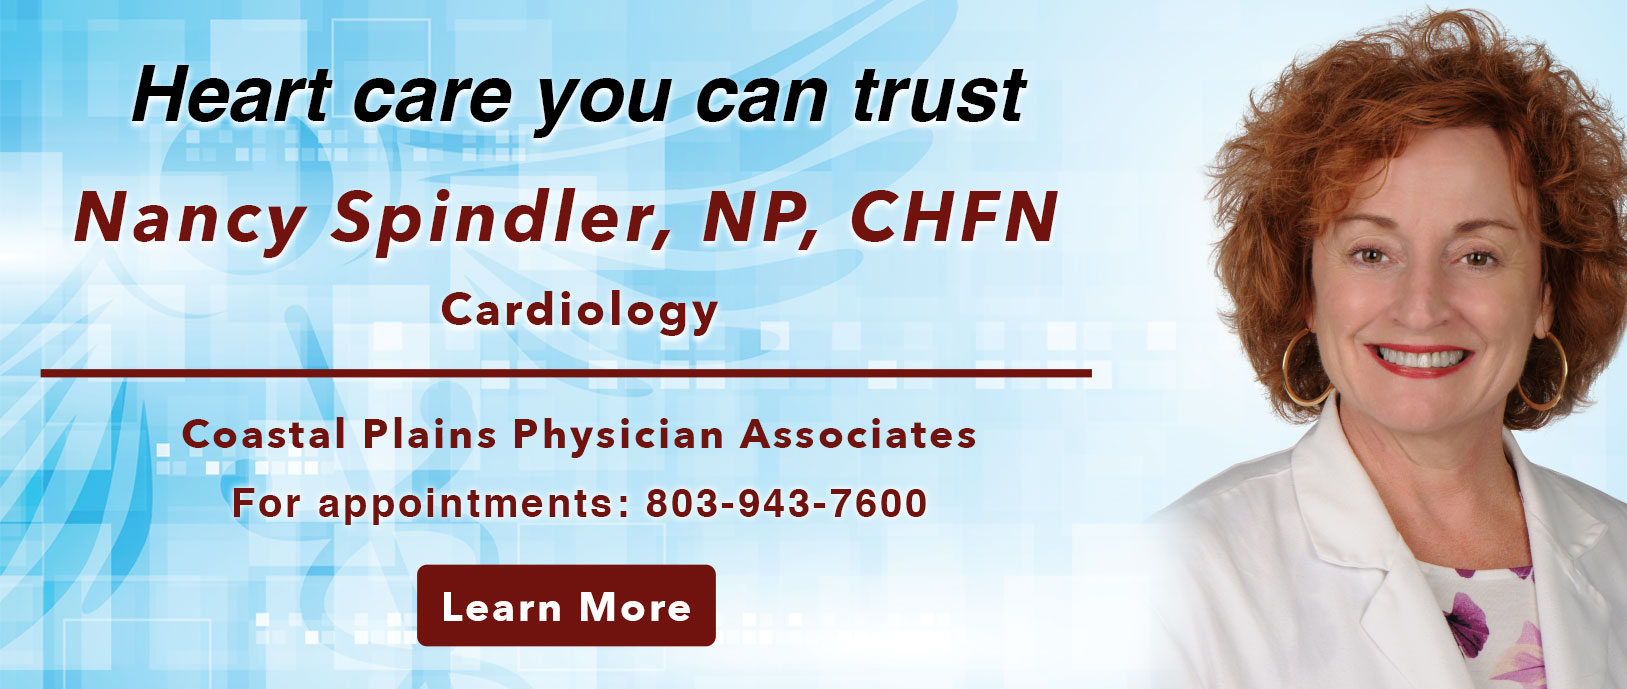 Heart Care you can trust.  Nancy Spindler, NP CHFN Cardiology. Coastal Plains Physician Associates. For appointments: 803-943-7600. Learn More